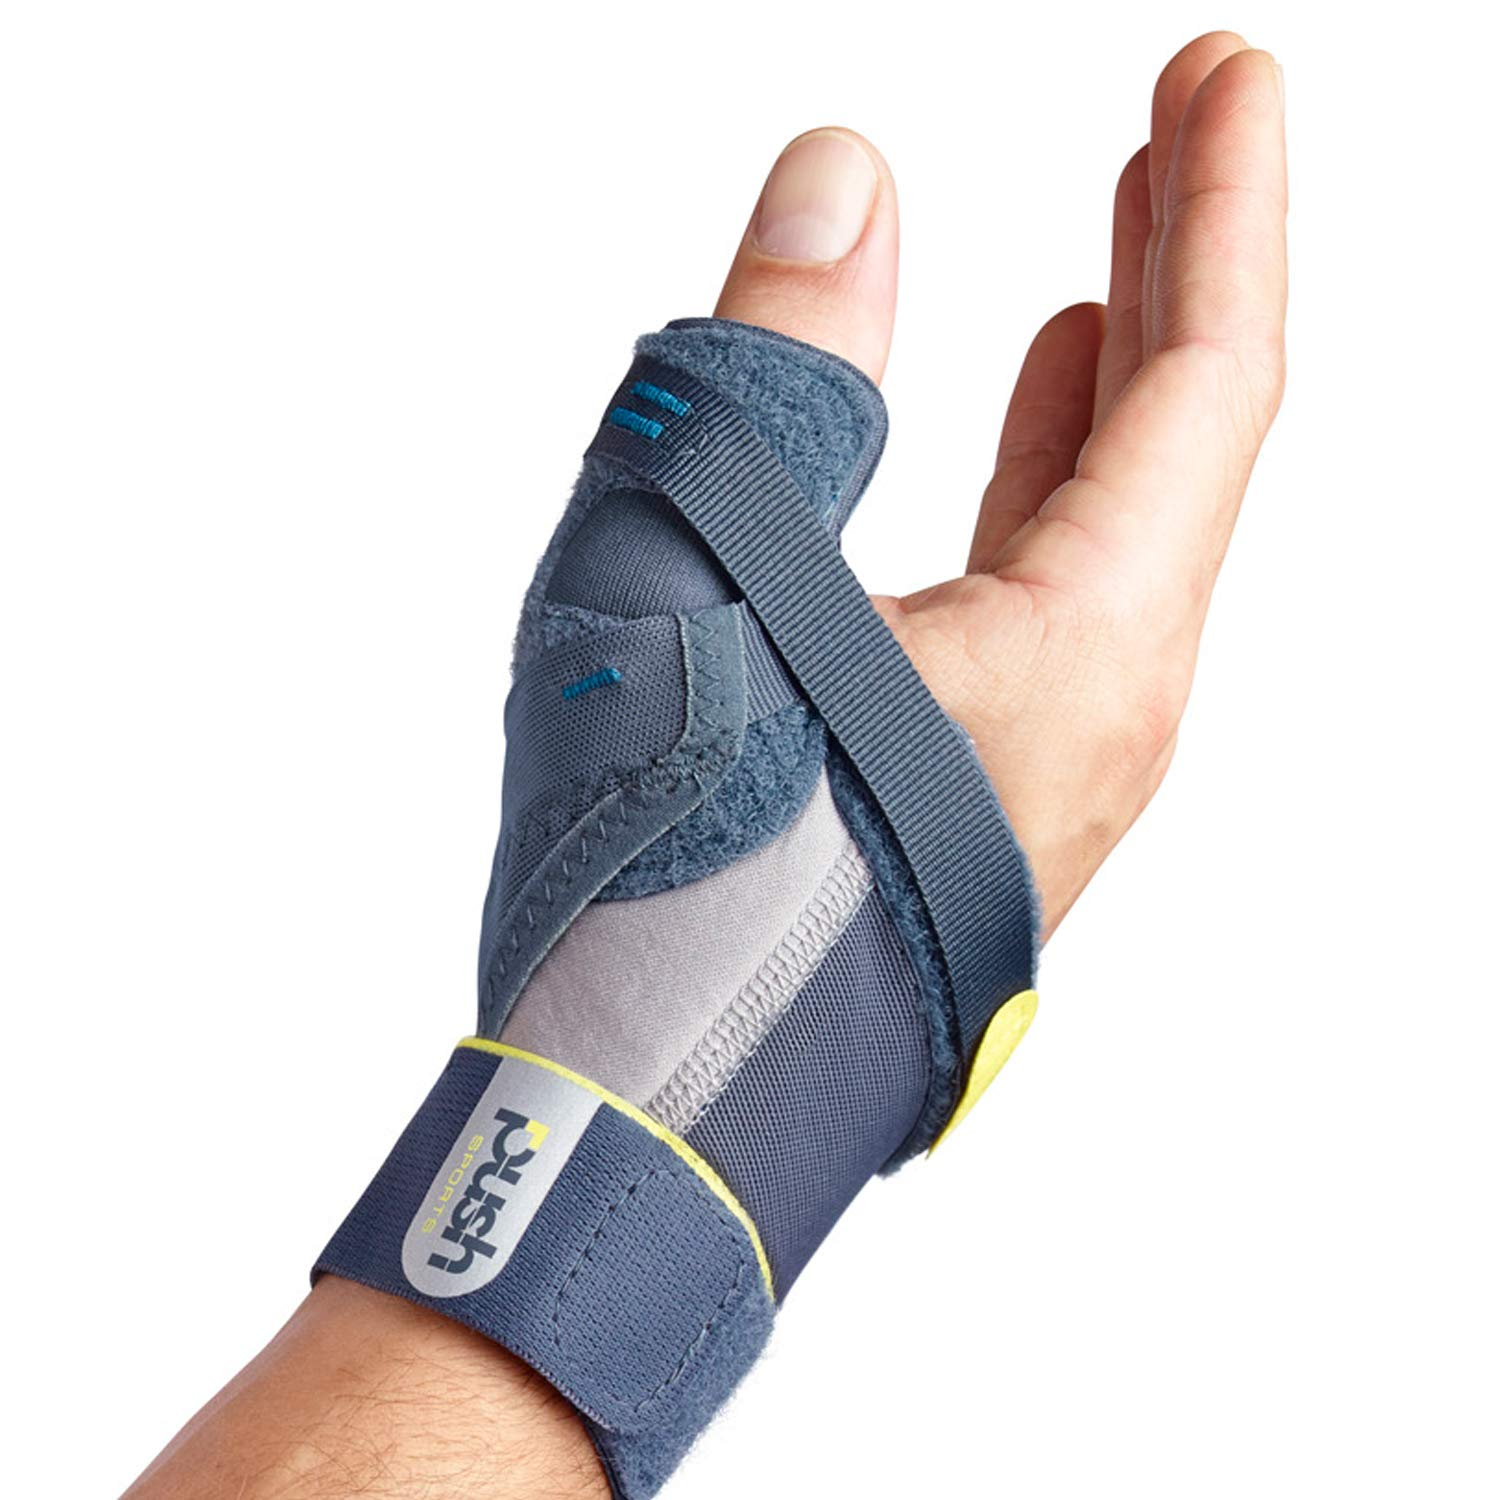 Push Sports Thumb Brace - Stabilizes Skier's Thumb, Optimizes Function (Right Medium) by Push Sports